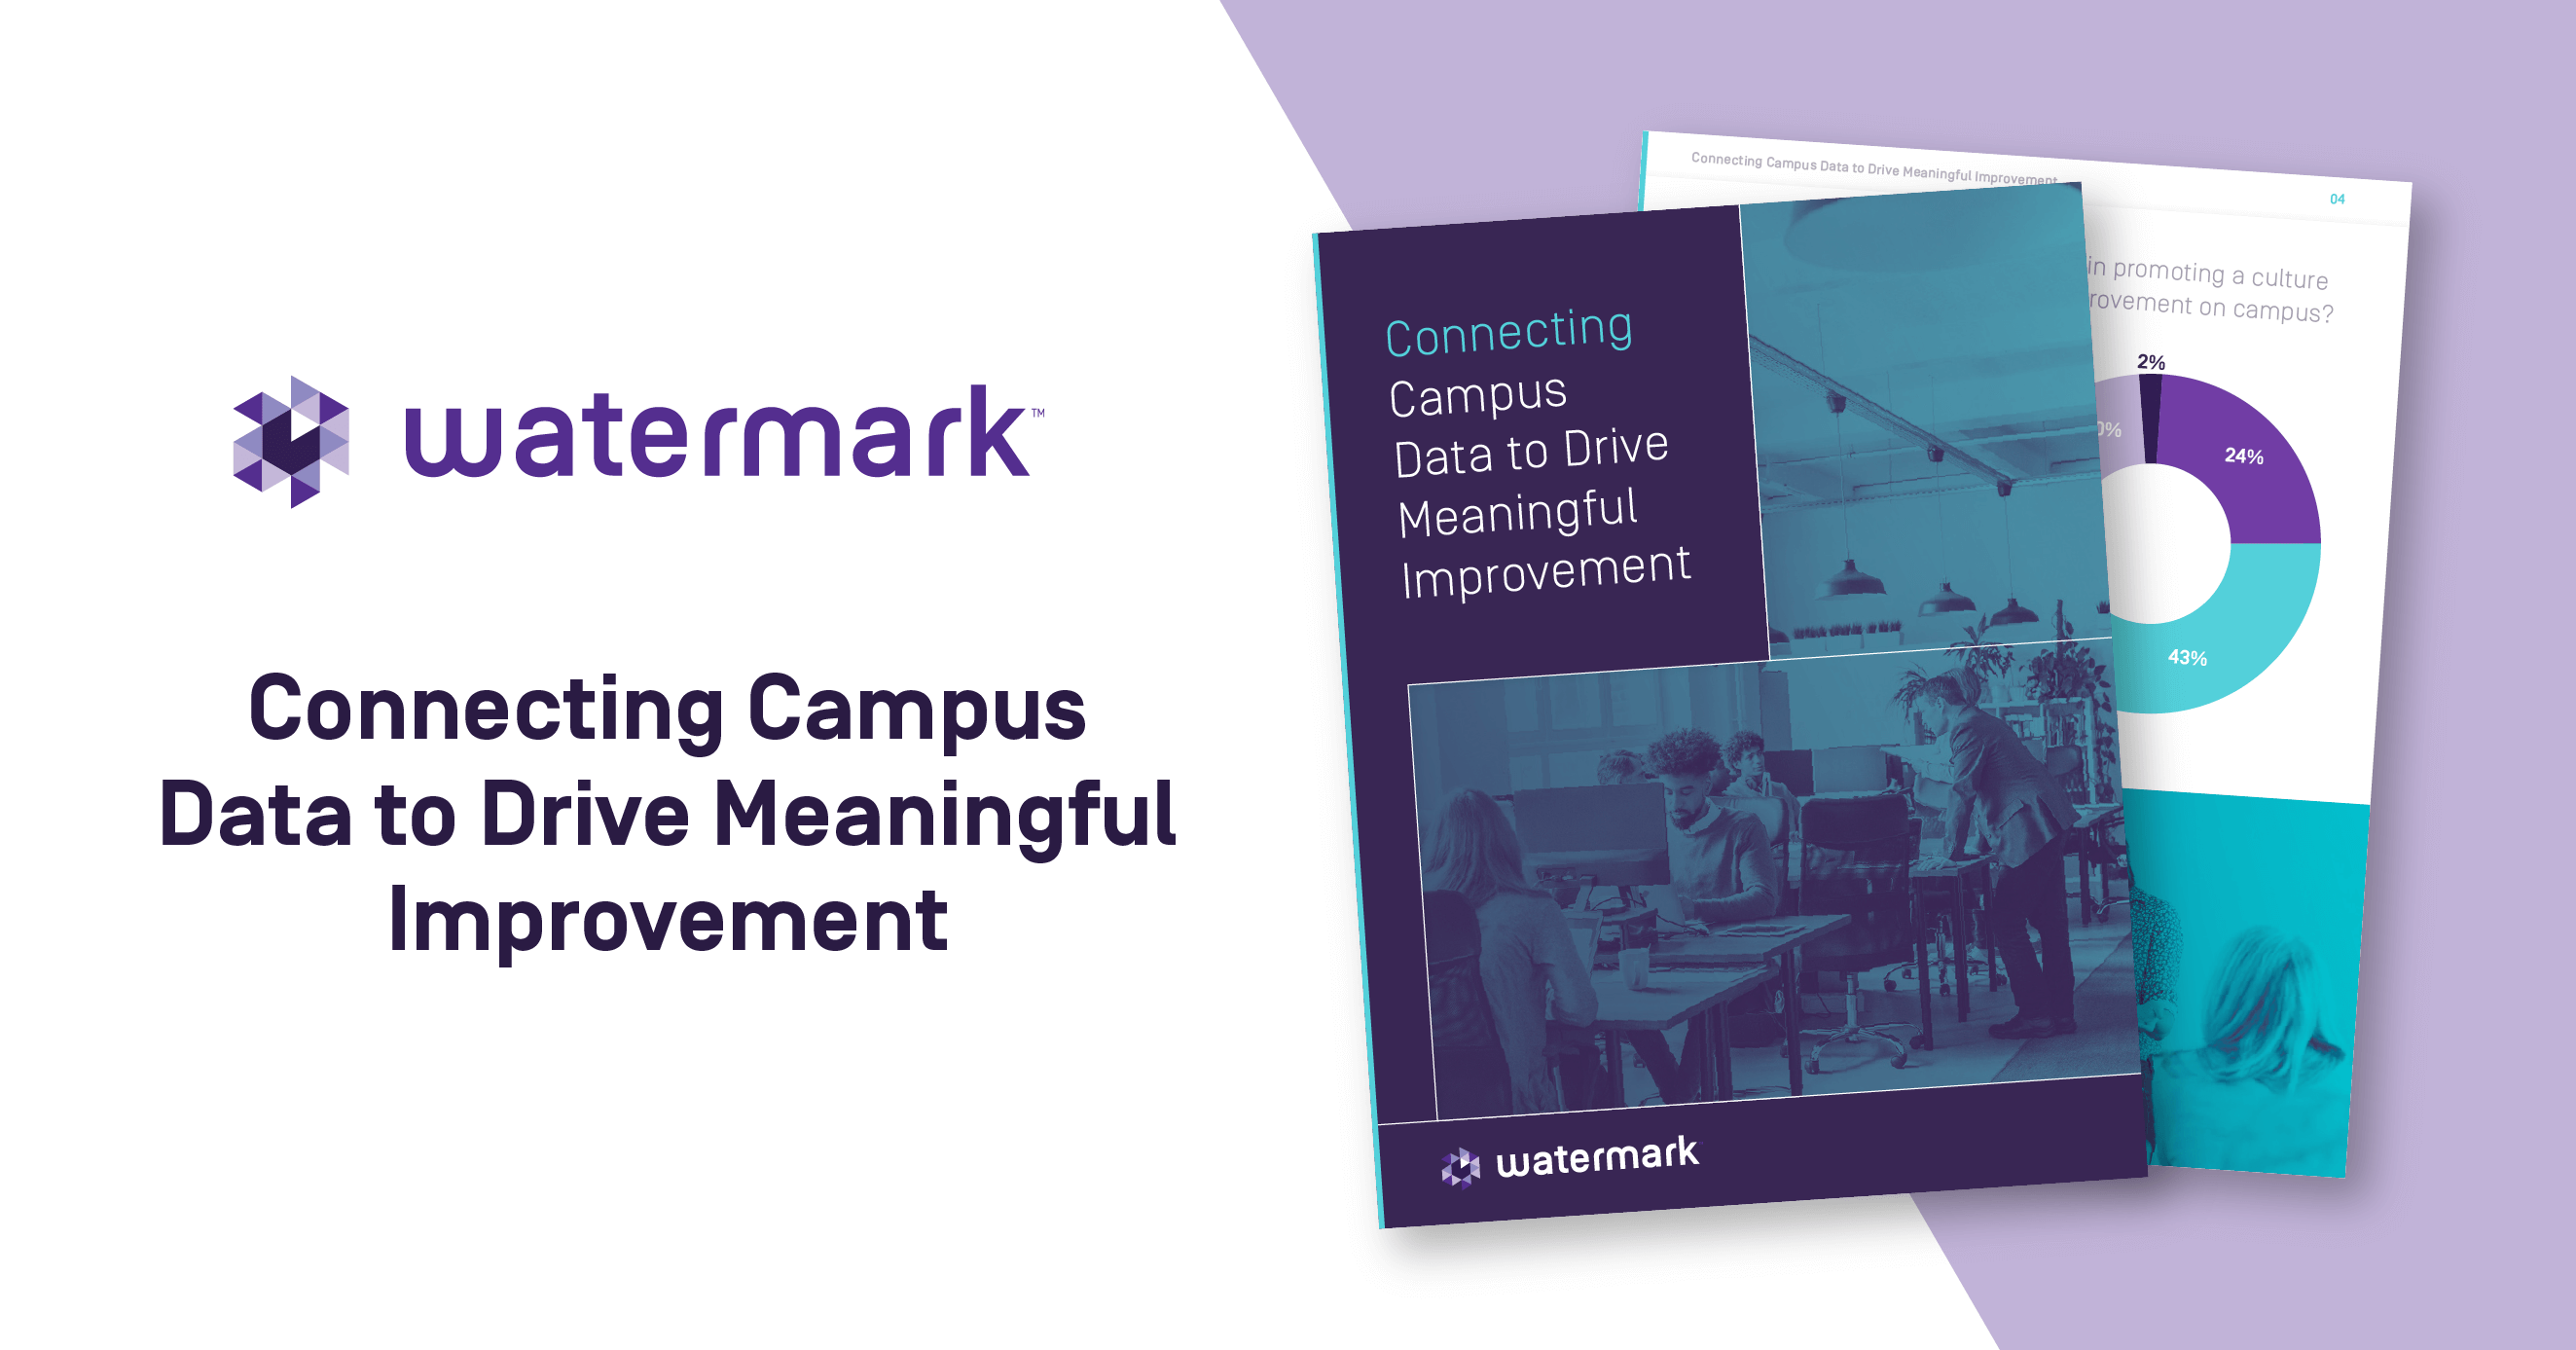 Watermark Releases Survey of Higher Education Professionals on Connecting Campus Data to Drive Meaningful Improvement